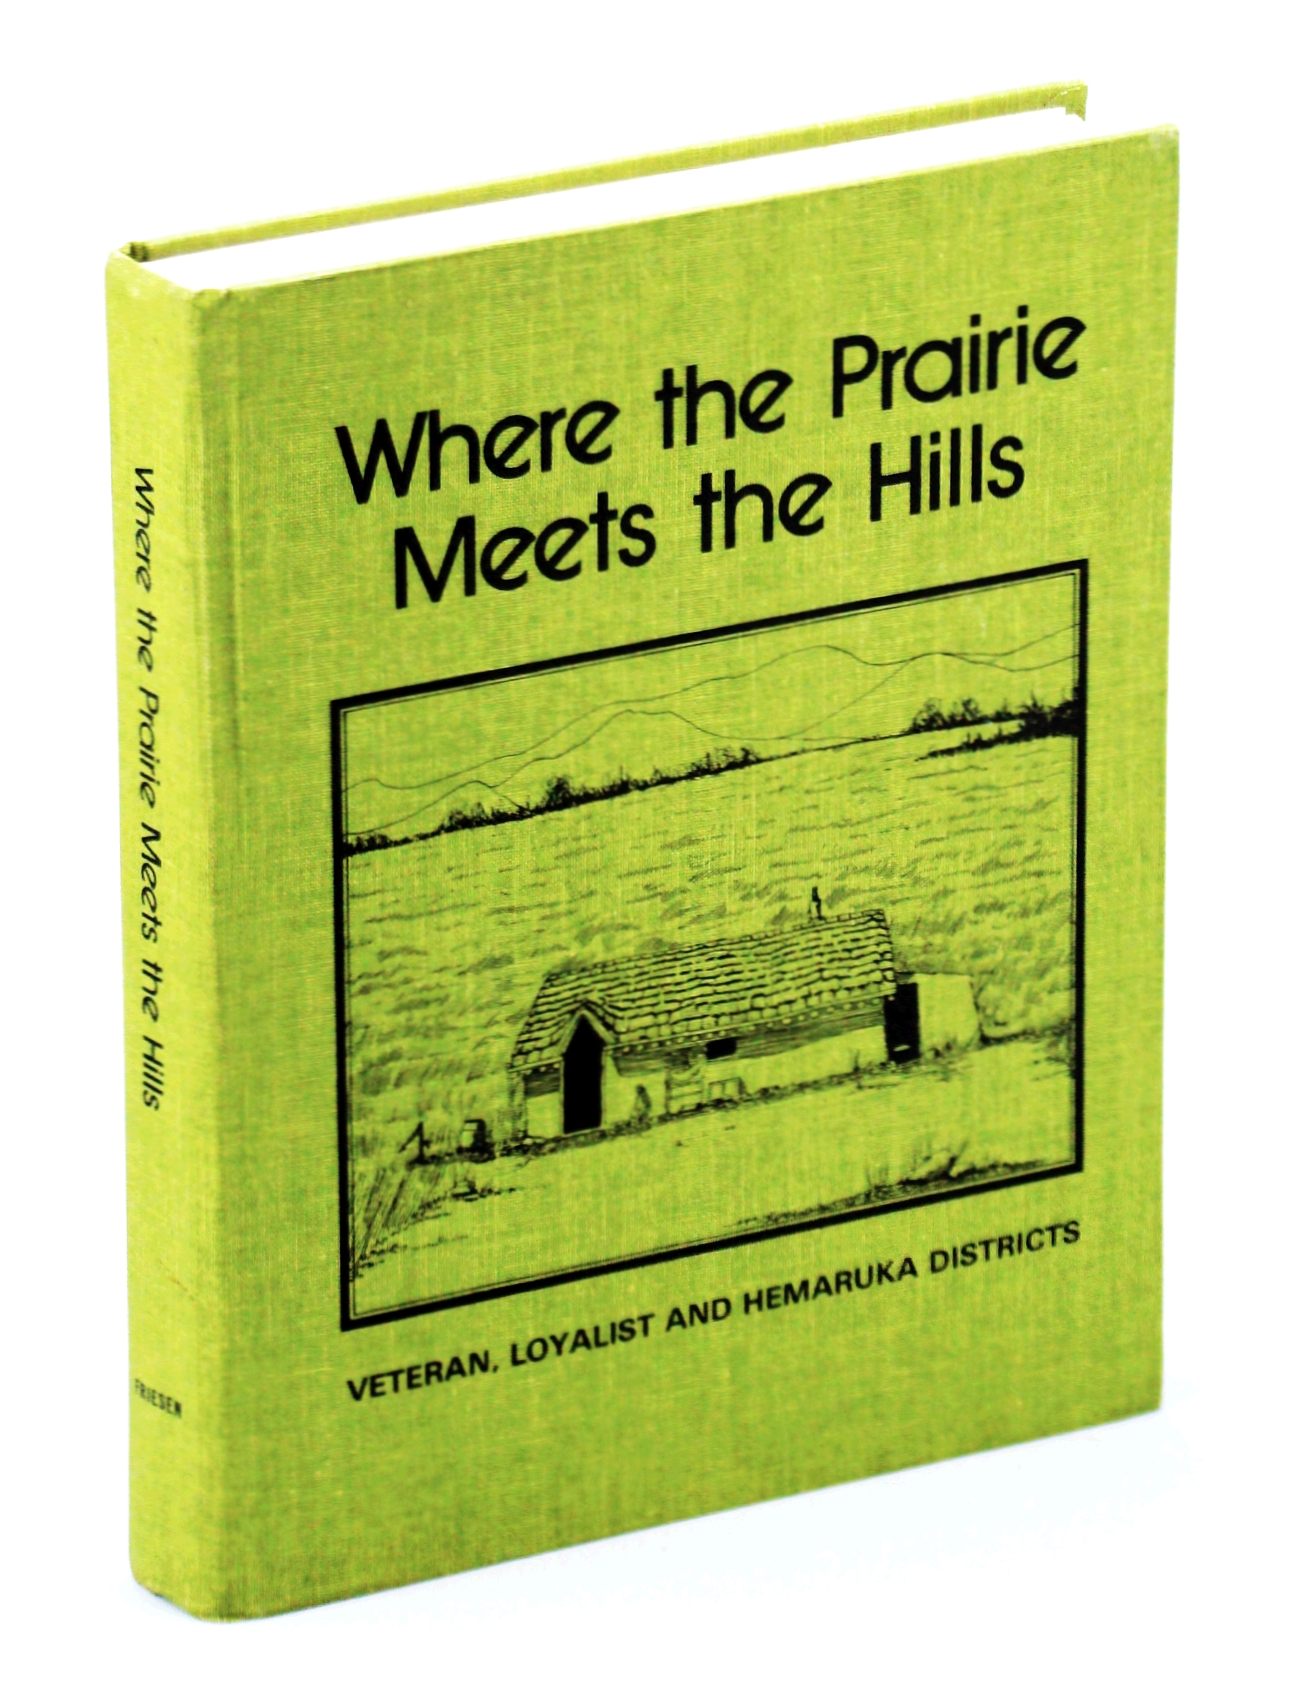 Image for Where the prairie meets the hills: Veteran, Loyalist, and Hemaruka districts